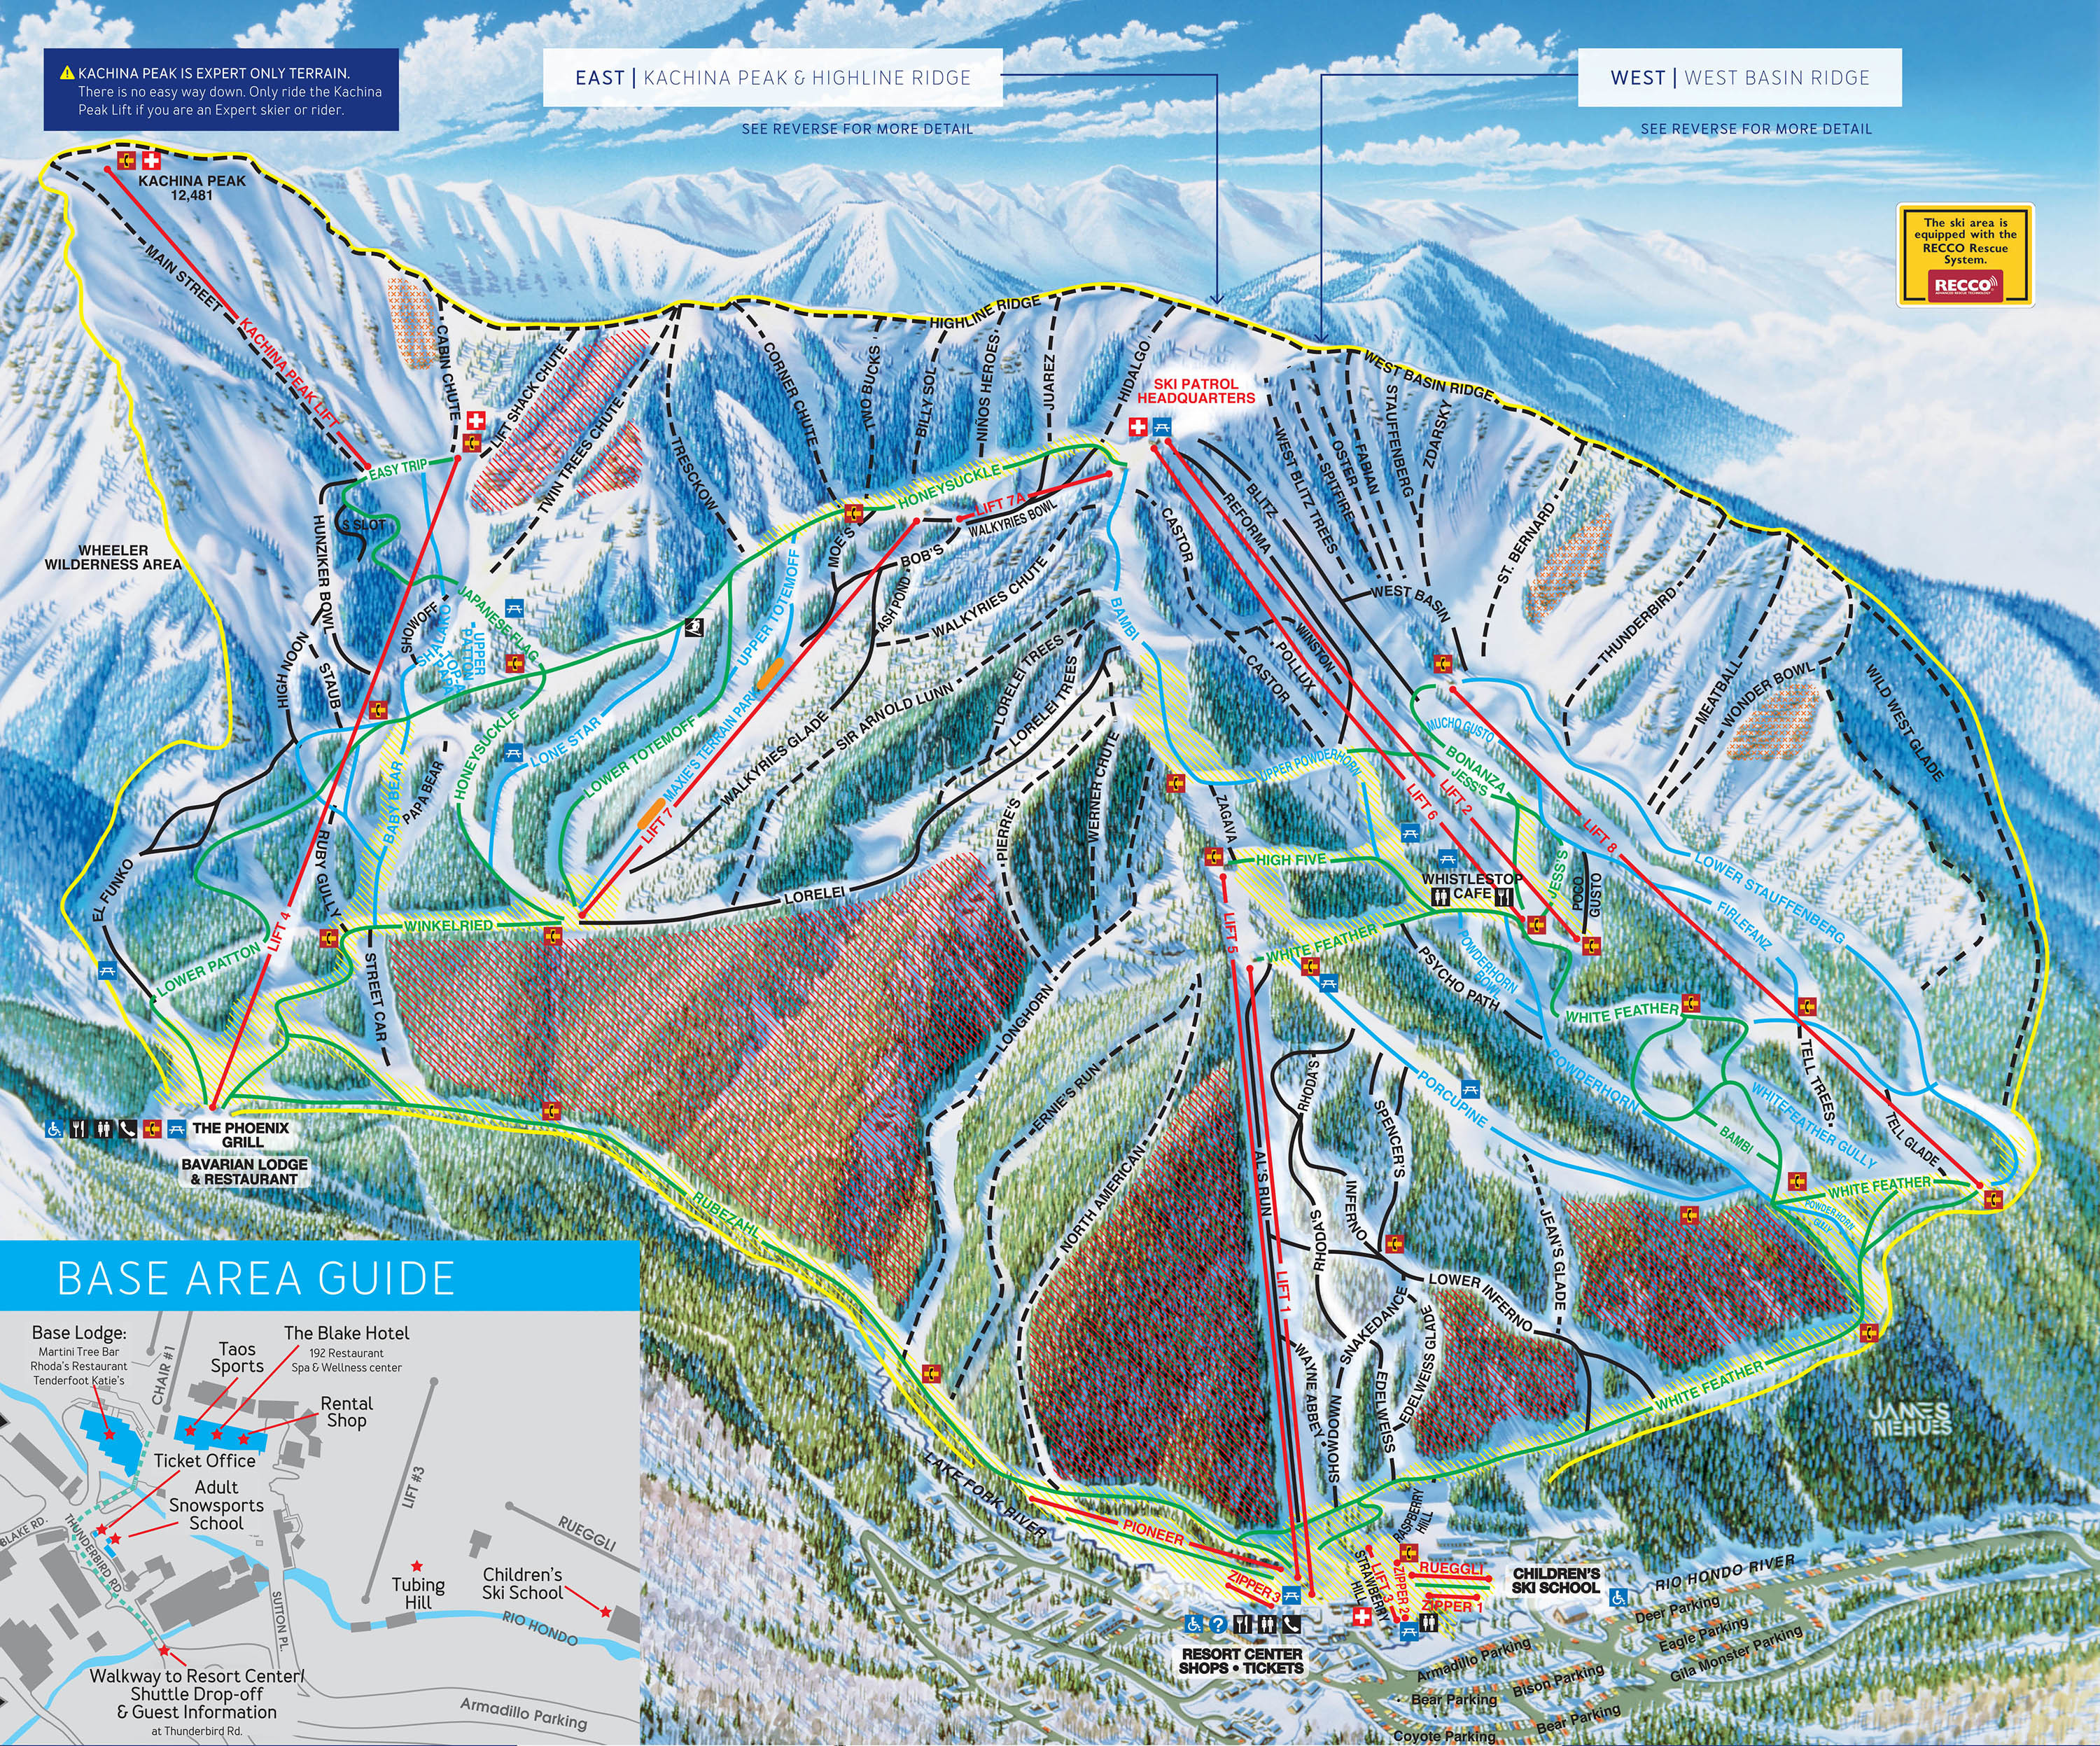 taos ski valley snow report | onthesnow